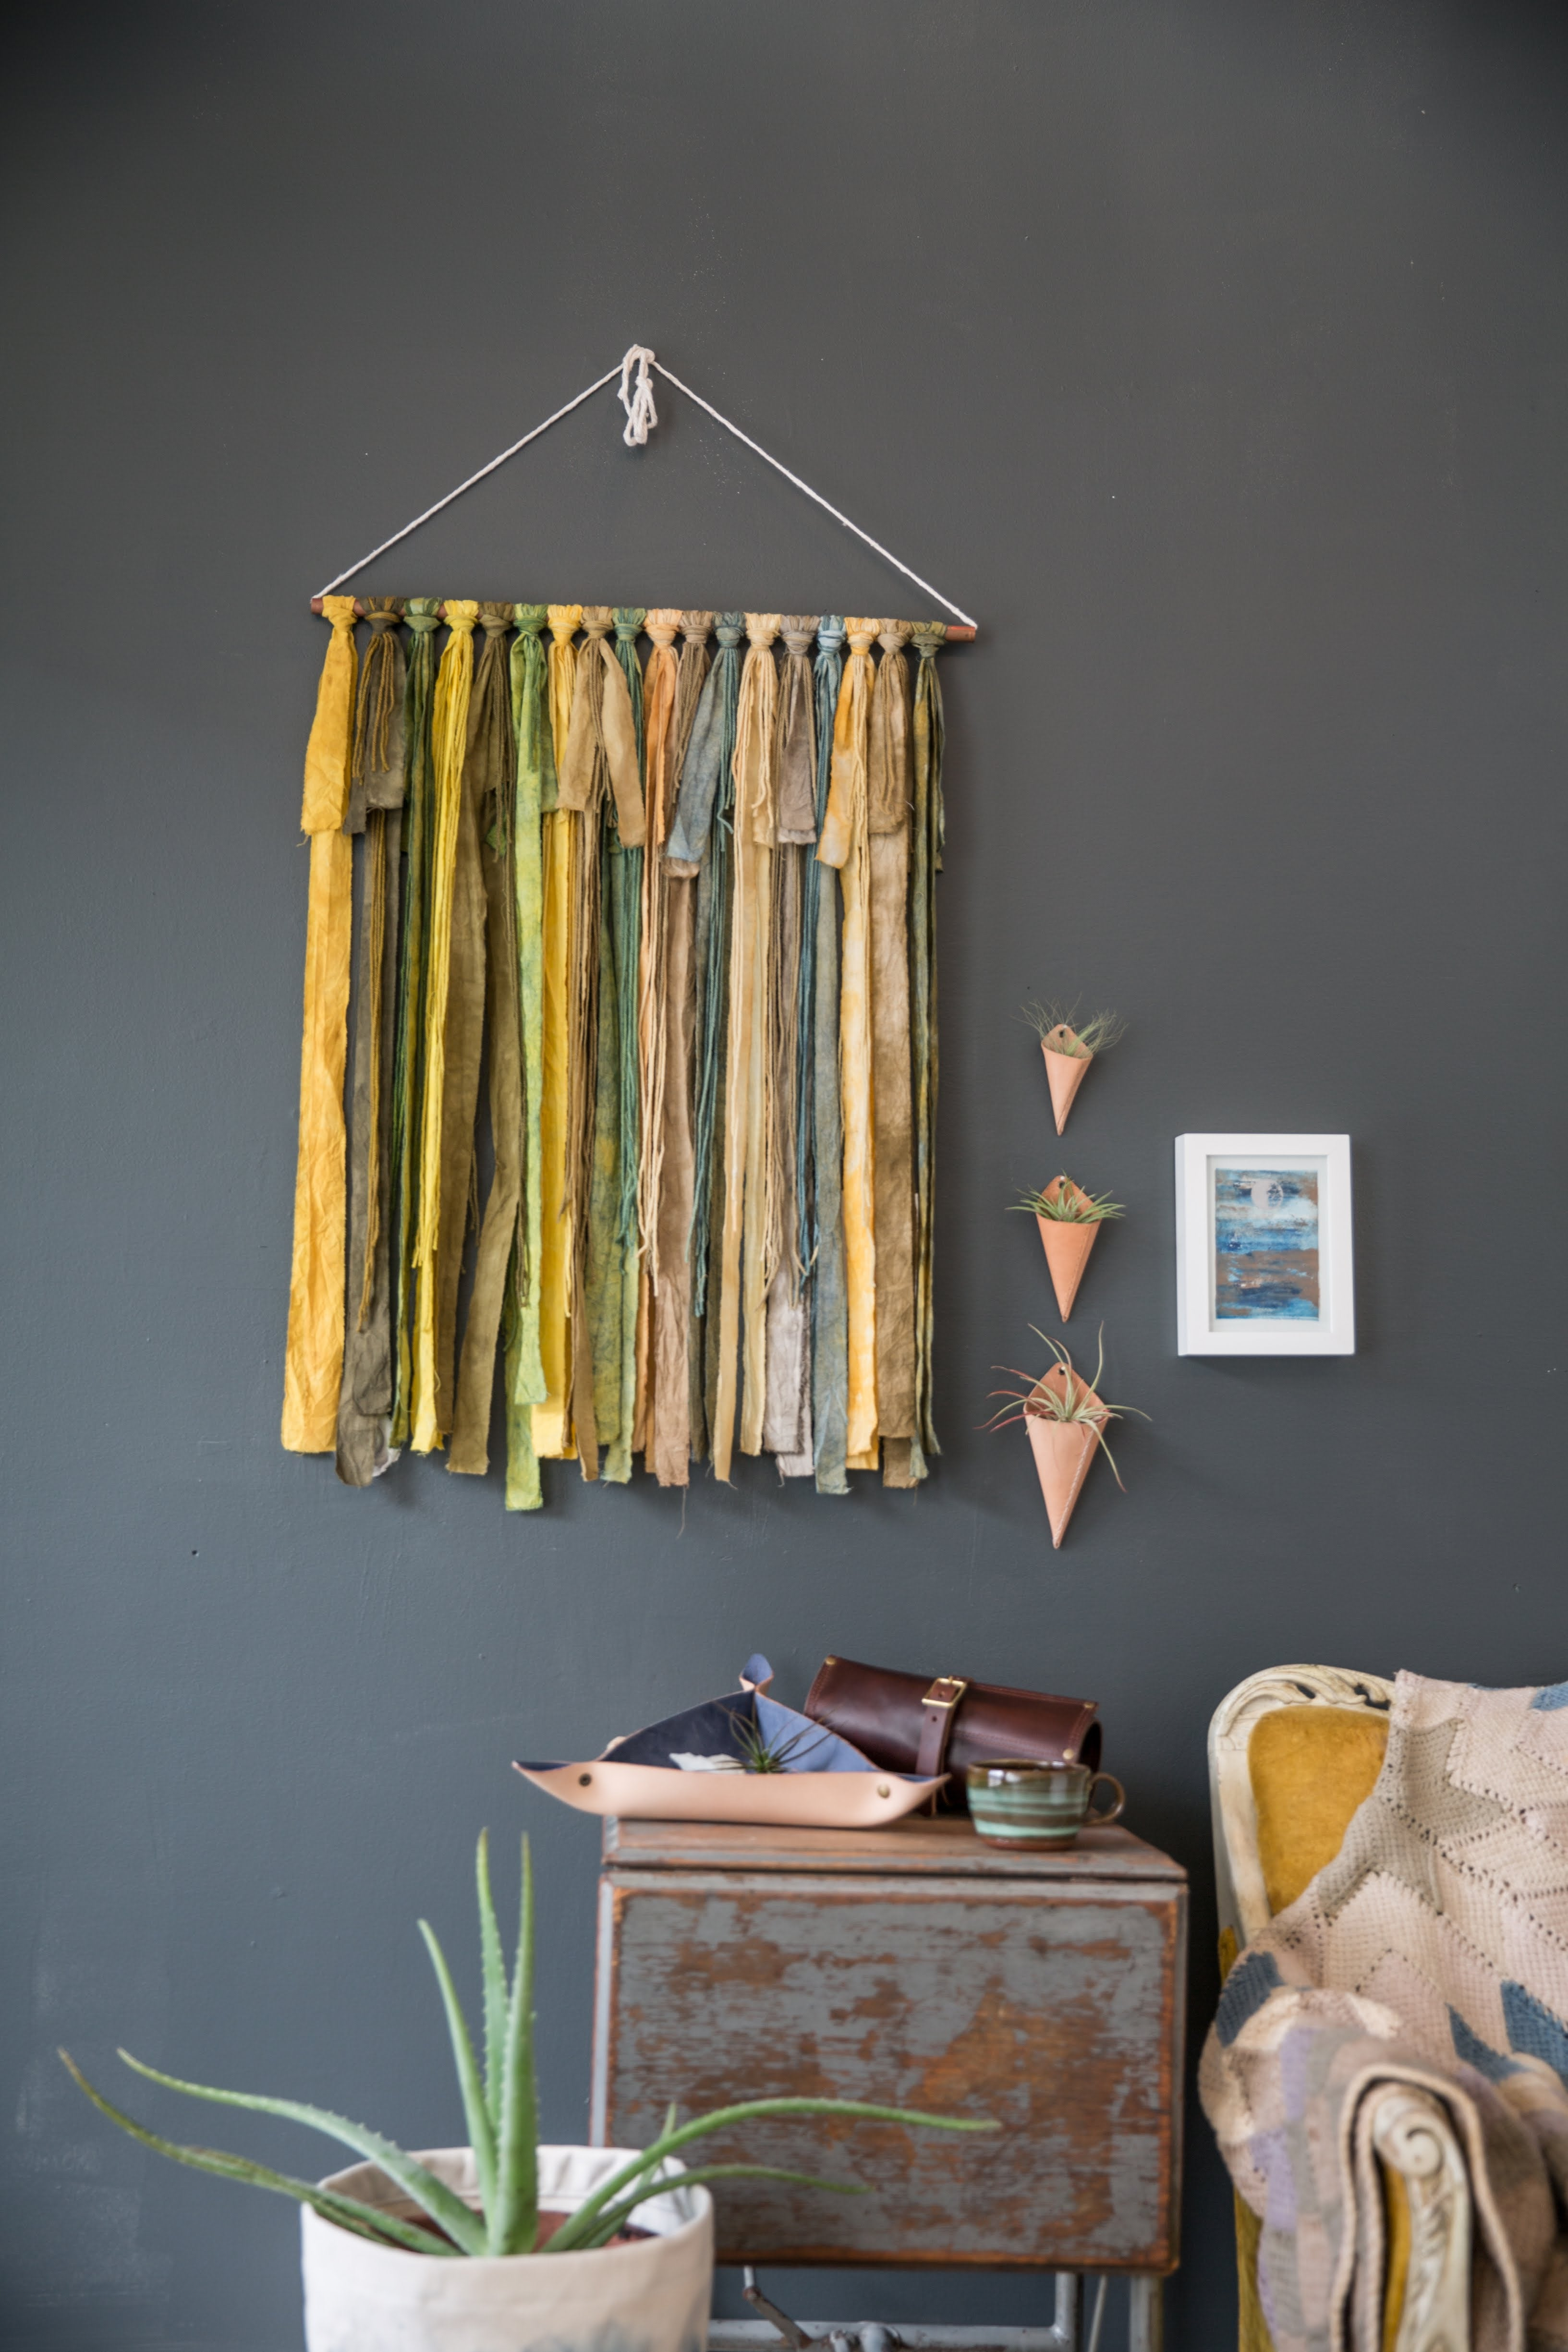 04/18 Natural Dye Workshop: Greenery with Adventure Textiles on Saturday April 18 at 11am